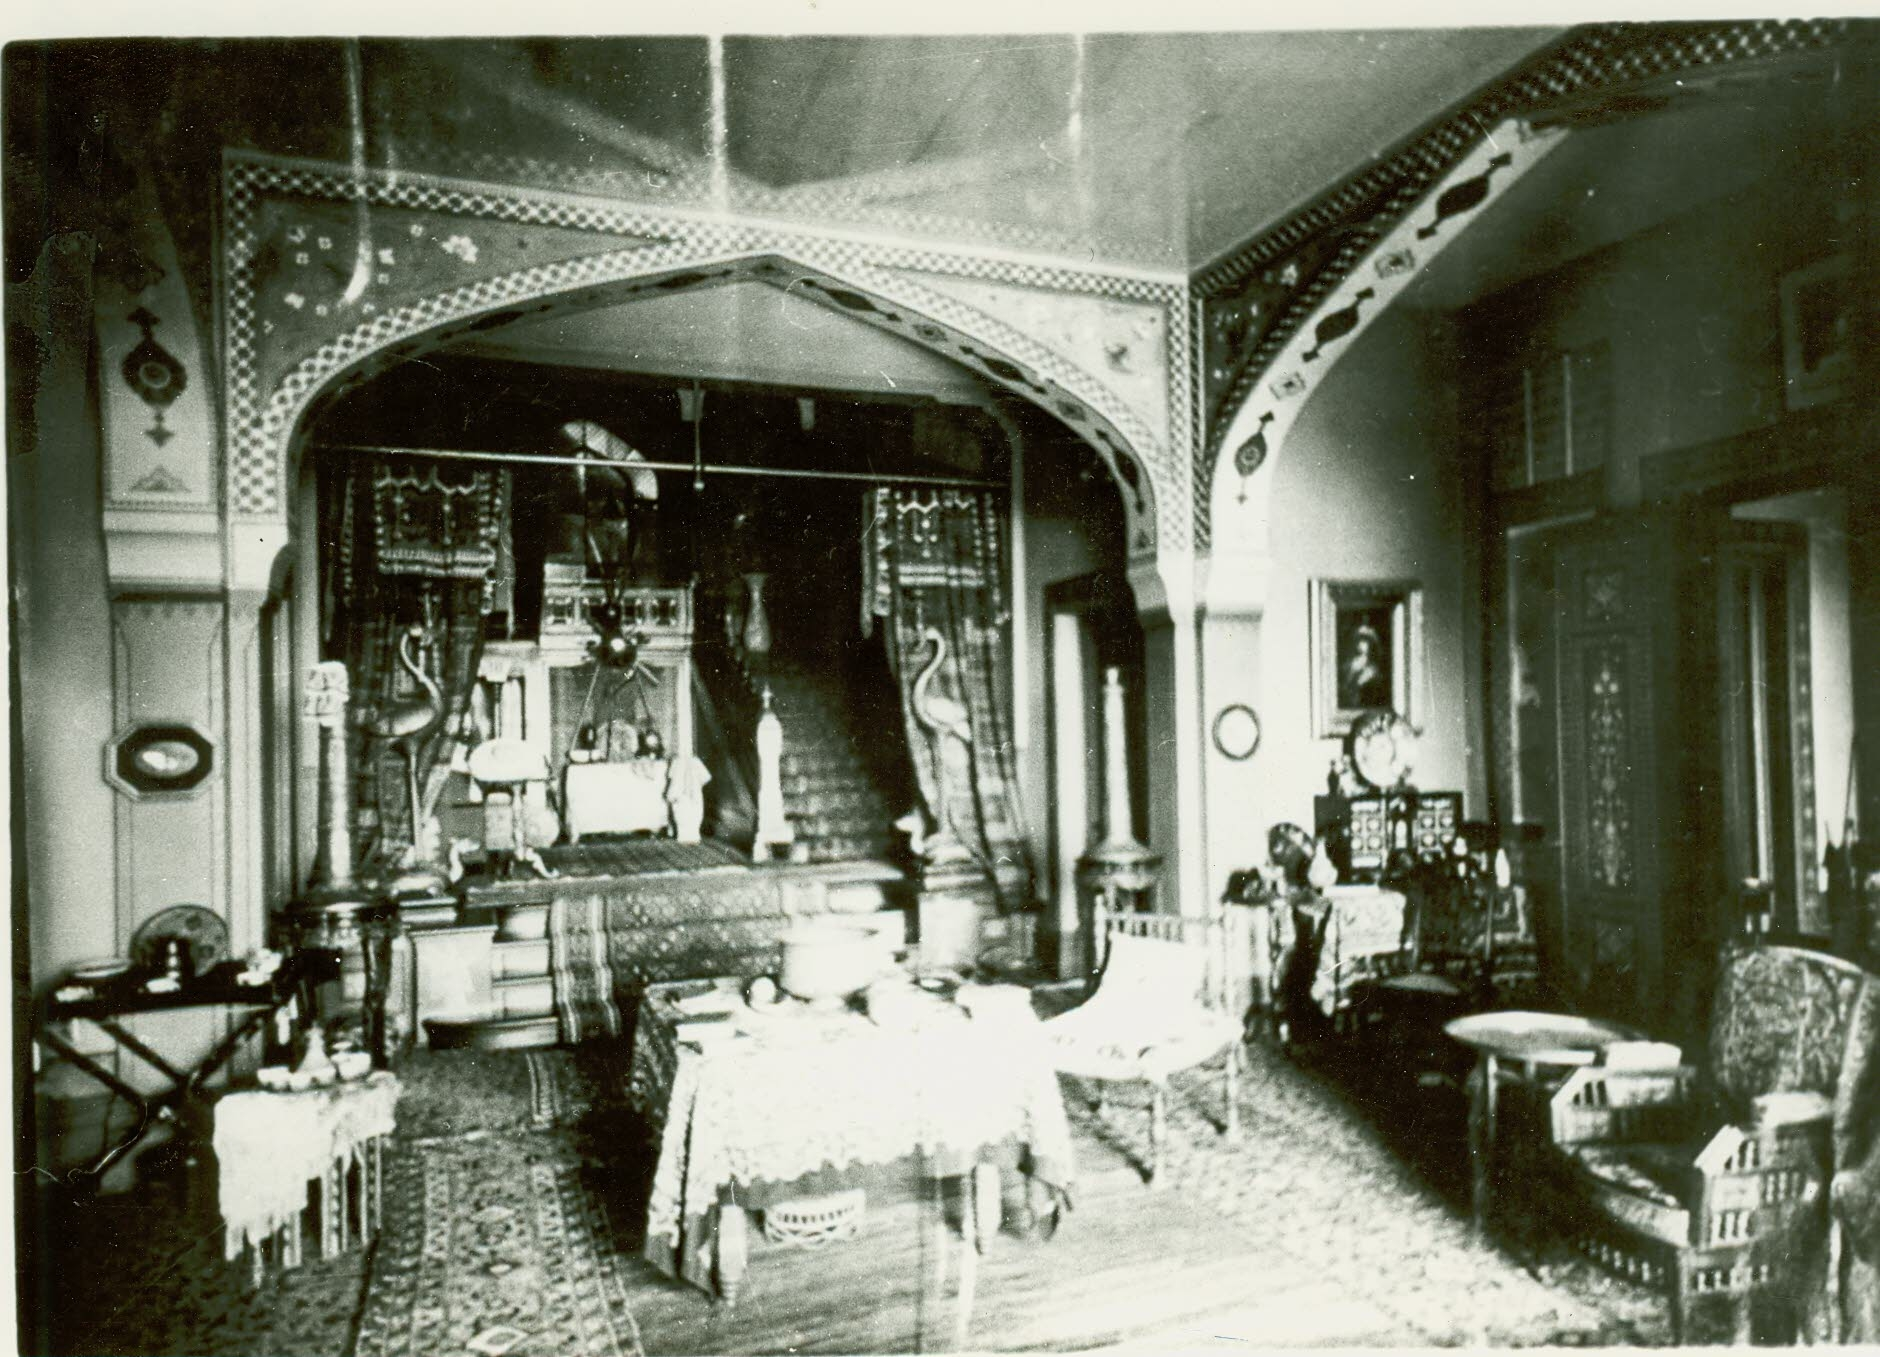 """Robert and Emily de Forest, """"Court Hall, Main House at Olana,"""" October 11, 1884, albumen print, 6 x1/4 x 8 3/8 in., OL.1986.378.28a (Collection Olana State Historic Site, New York State Office of Parks, Recreation and Historic Preservation)"""